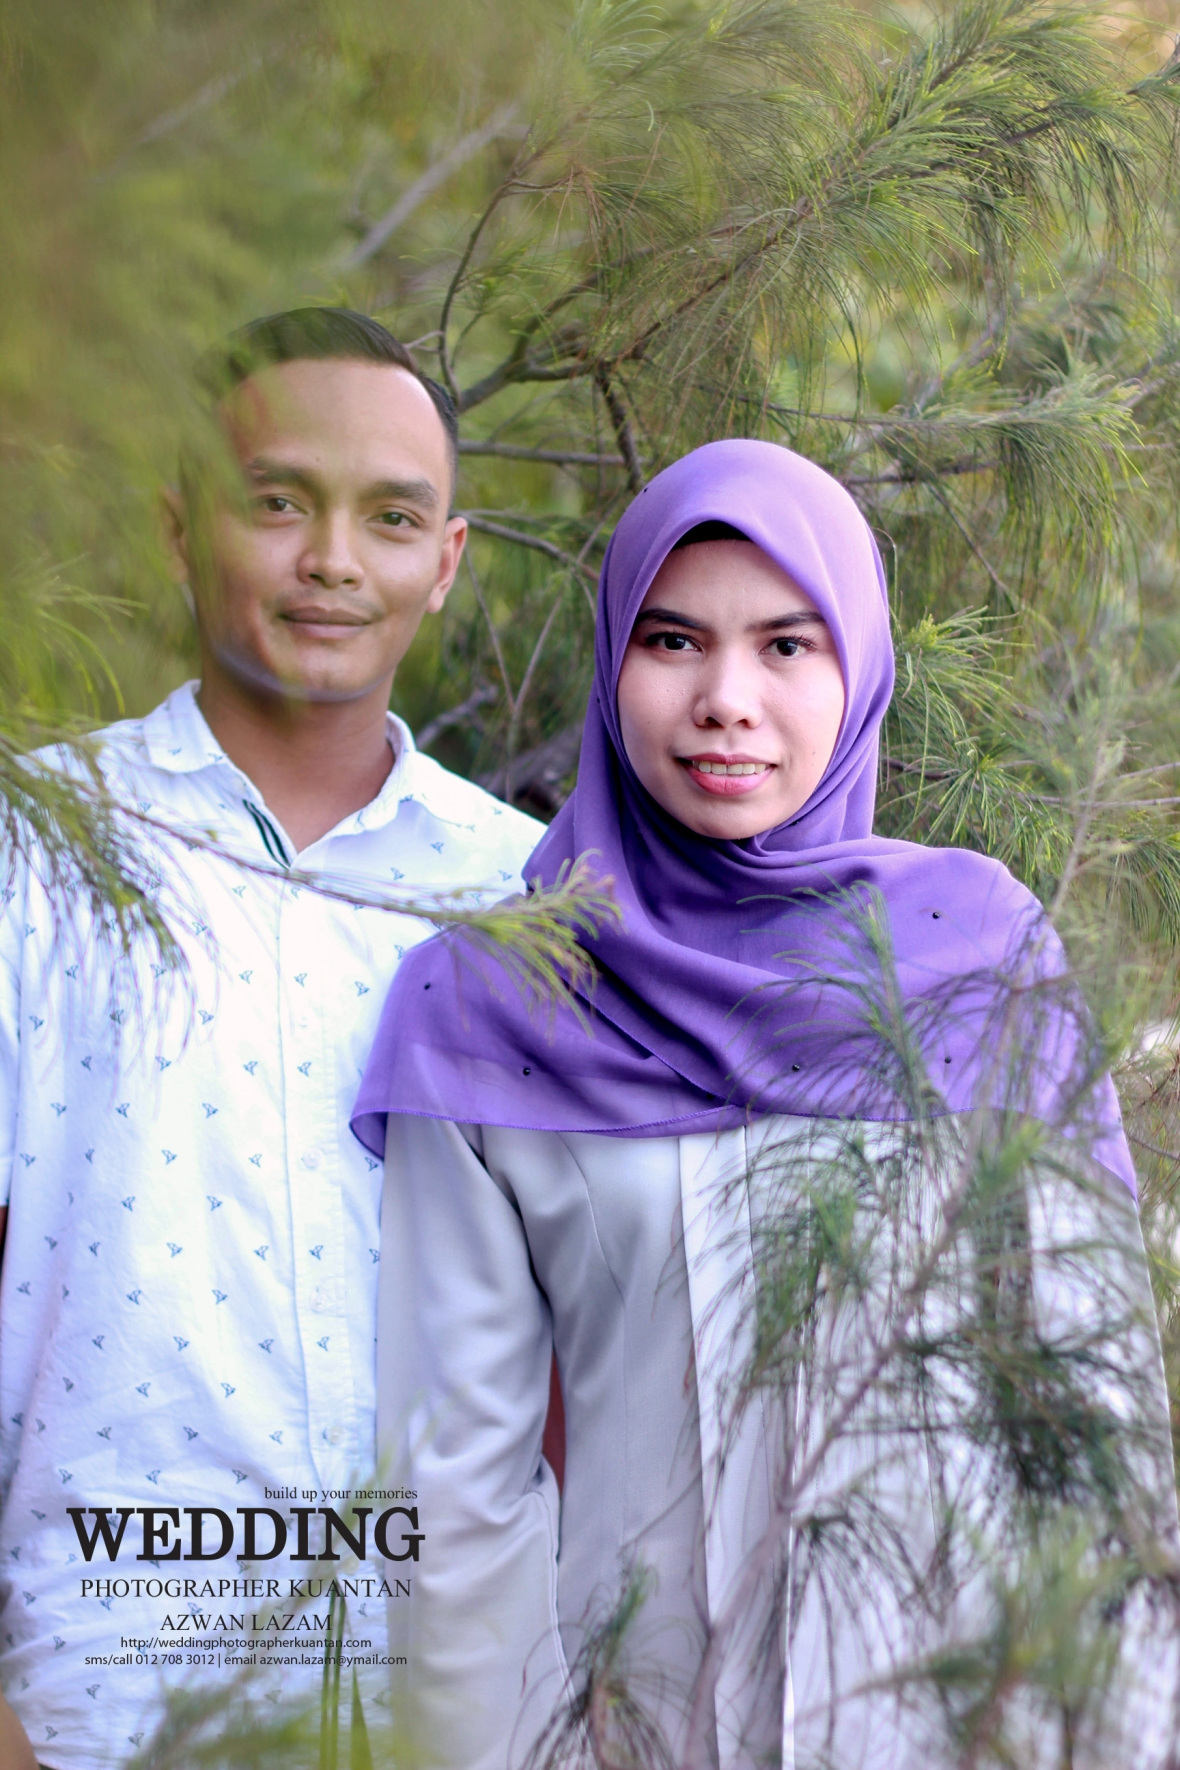 wedding-photographer-kuantan-3